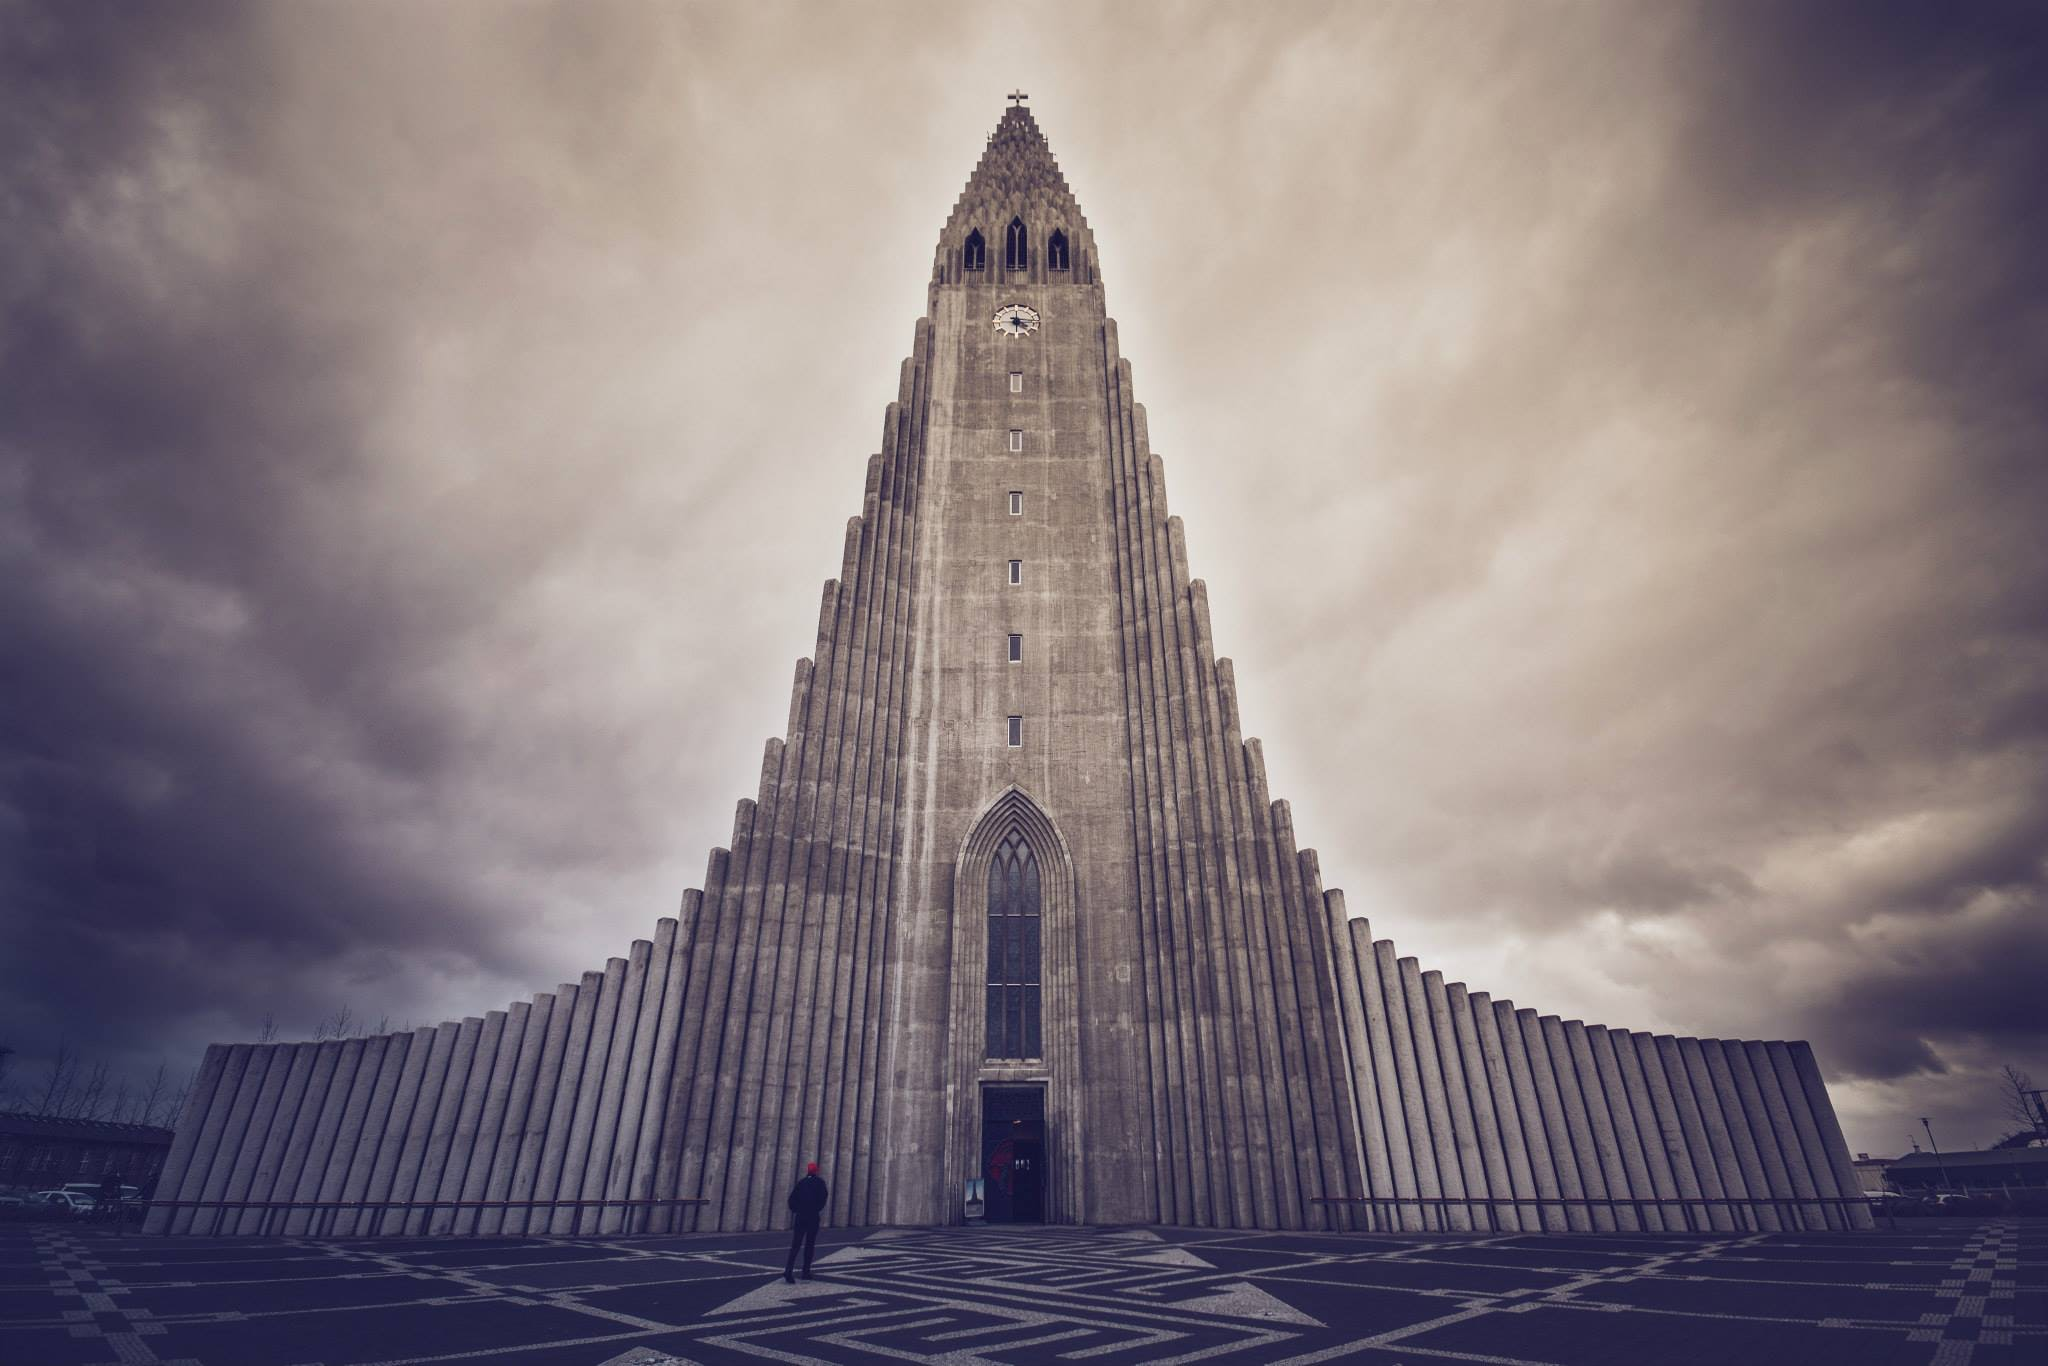 Church of Hallgrimur, Iceland